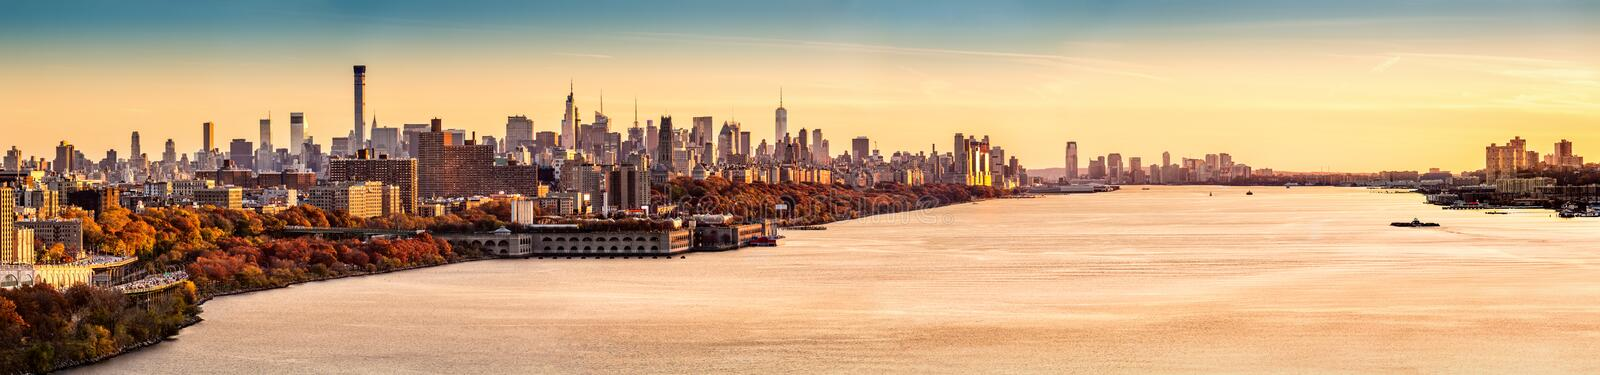 New York och Hudson River panorama royaltyfri foto